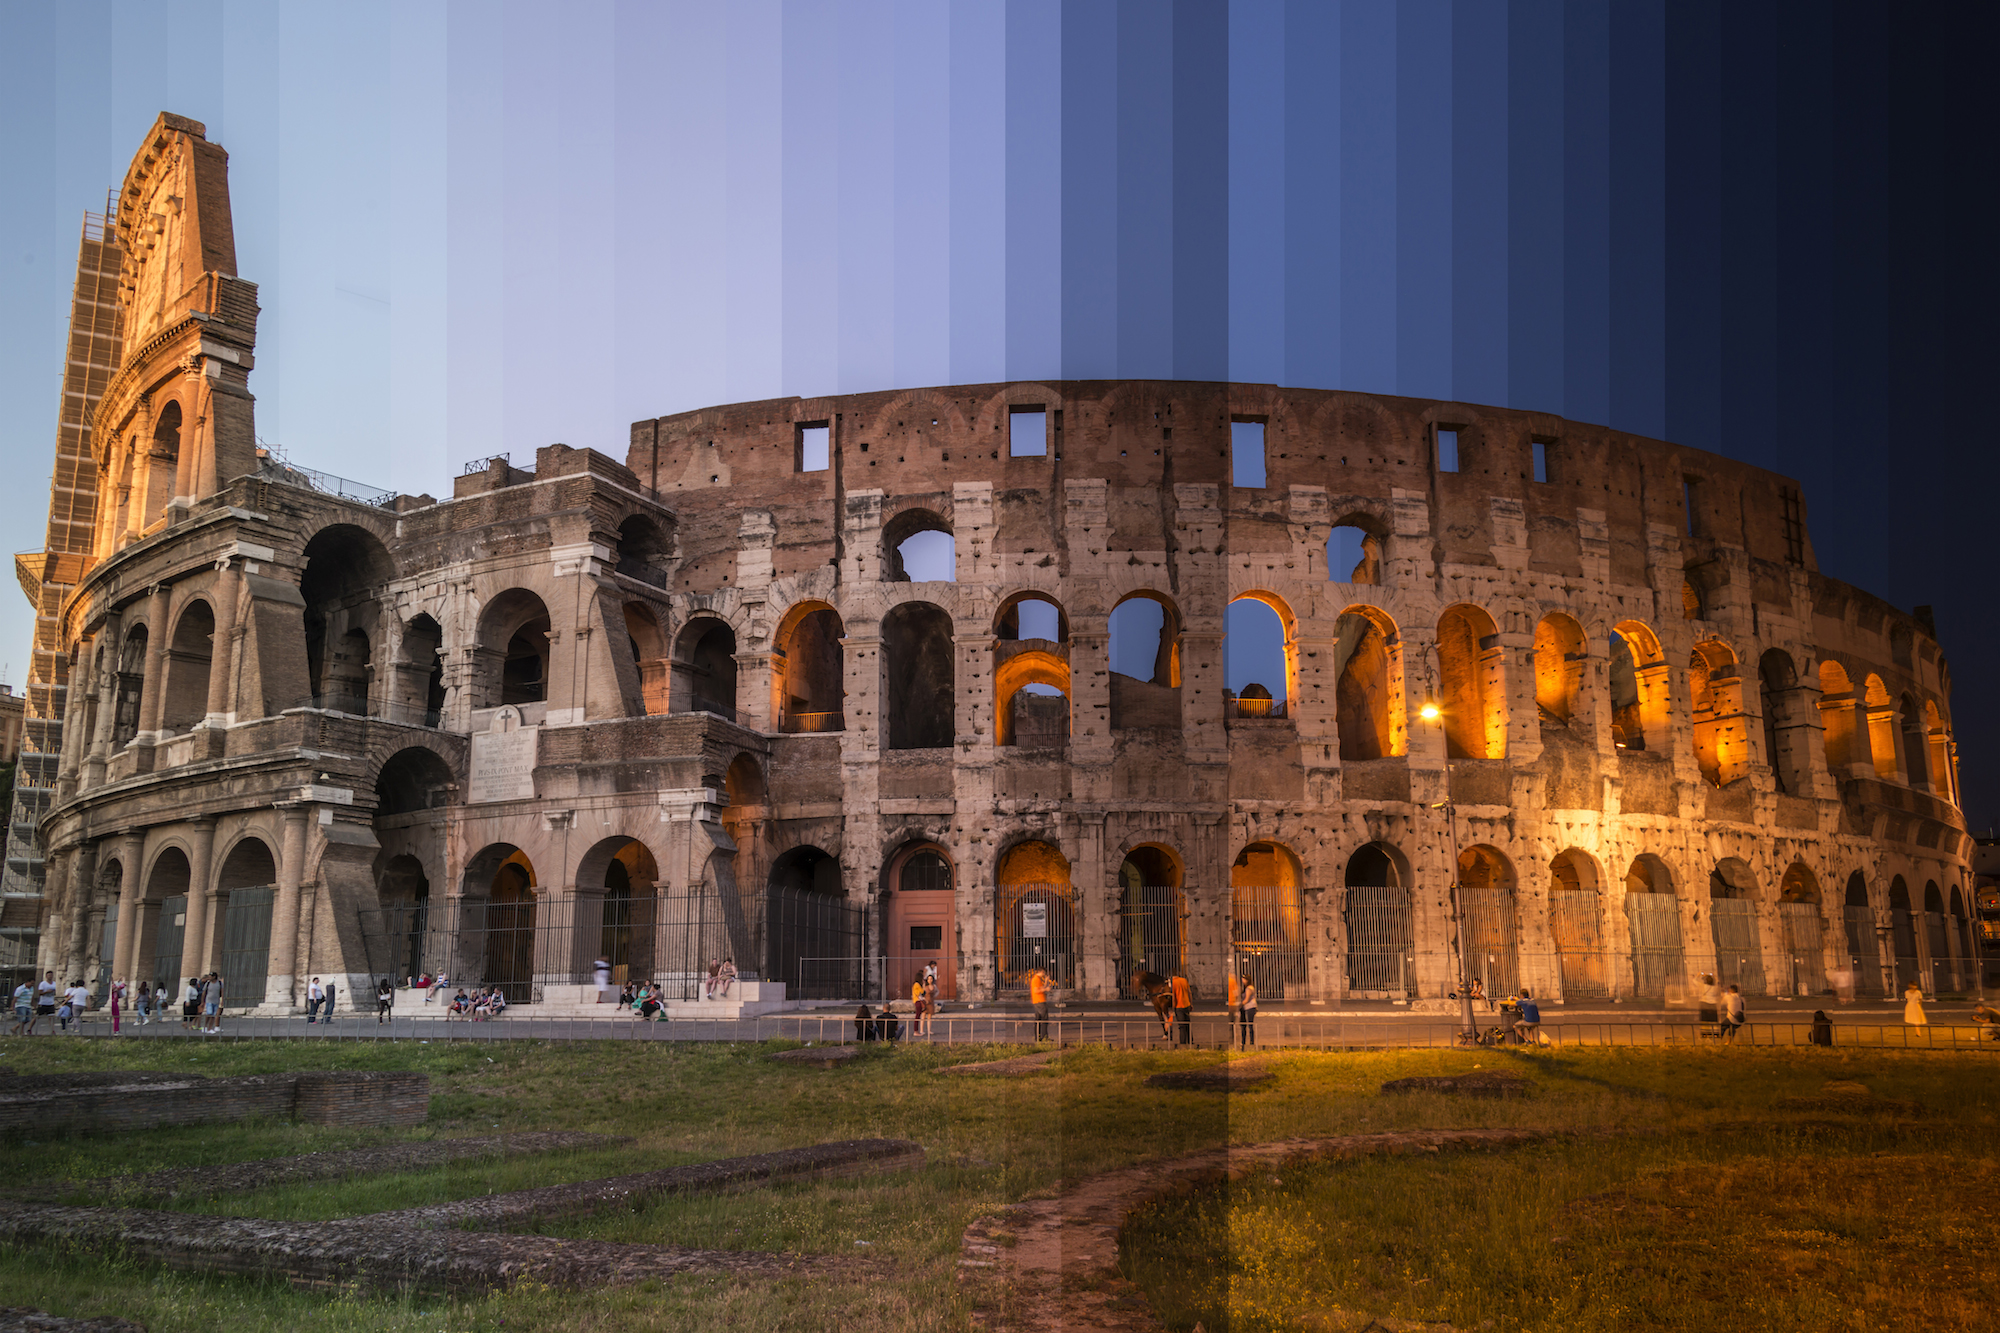 here is what famous buildings look like from day to night in one photo